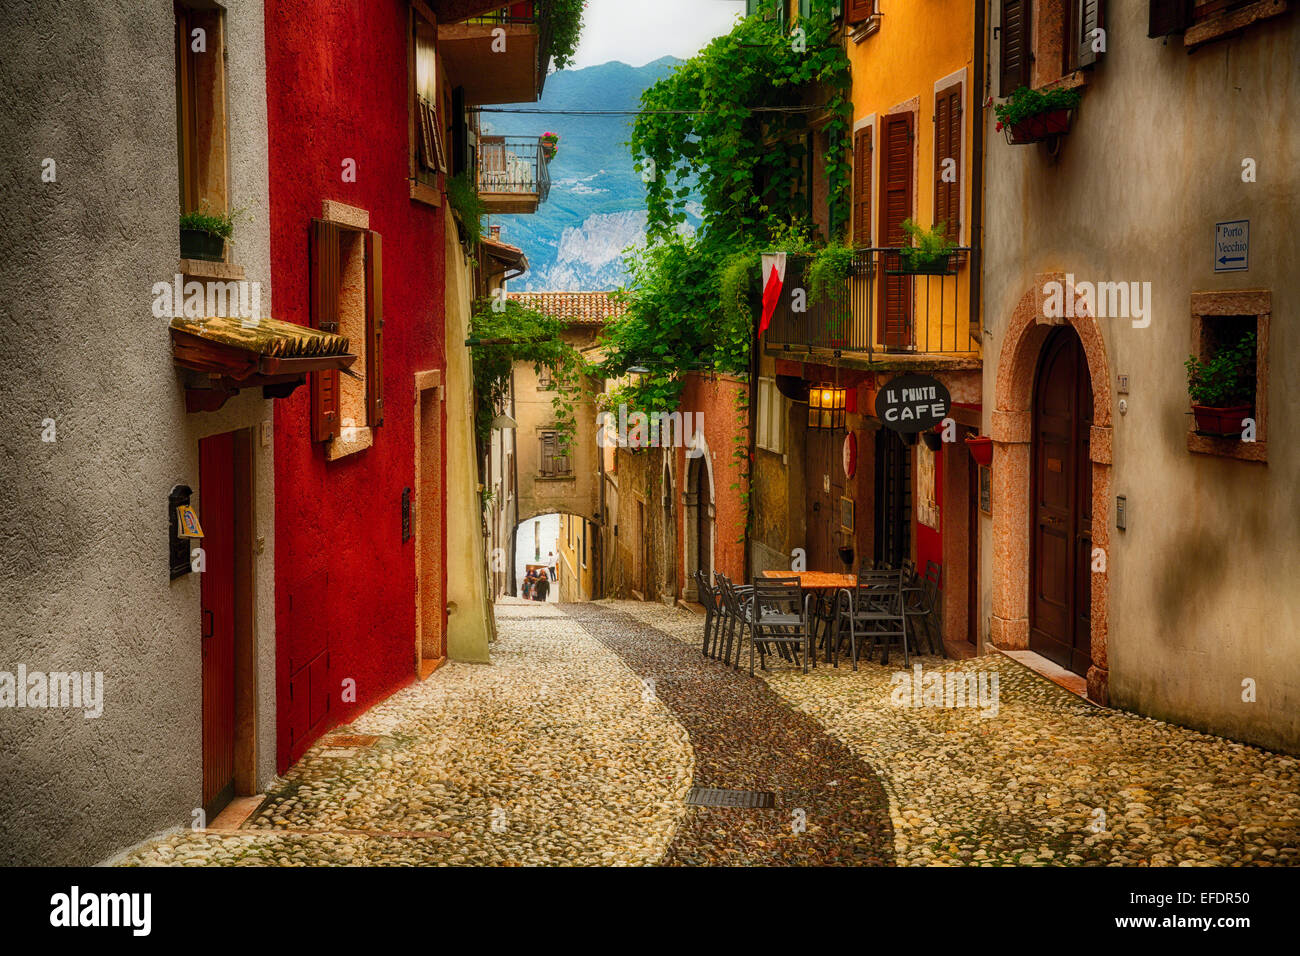 Colorful Street in Malcesine, Lake Garda, Lombardy, Italy - Stock Image